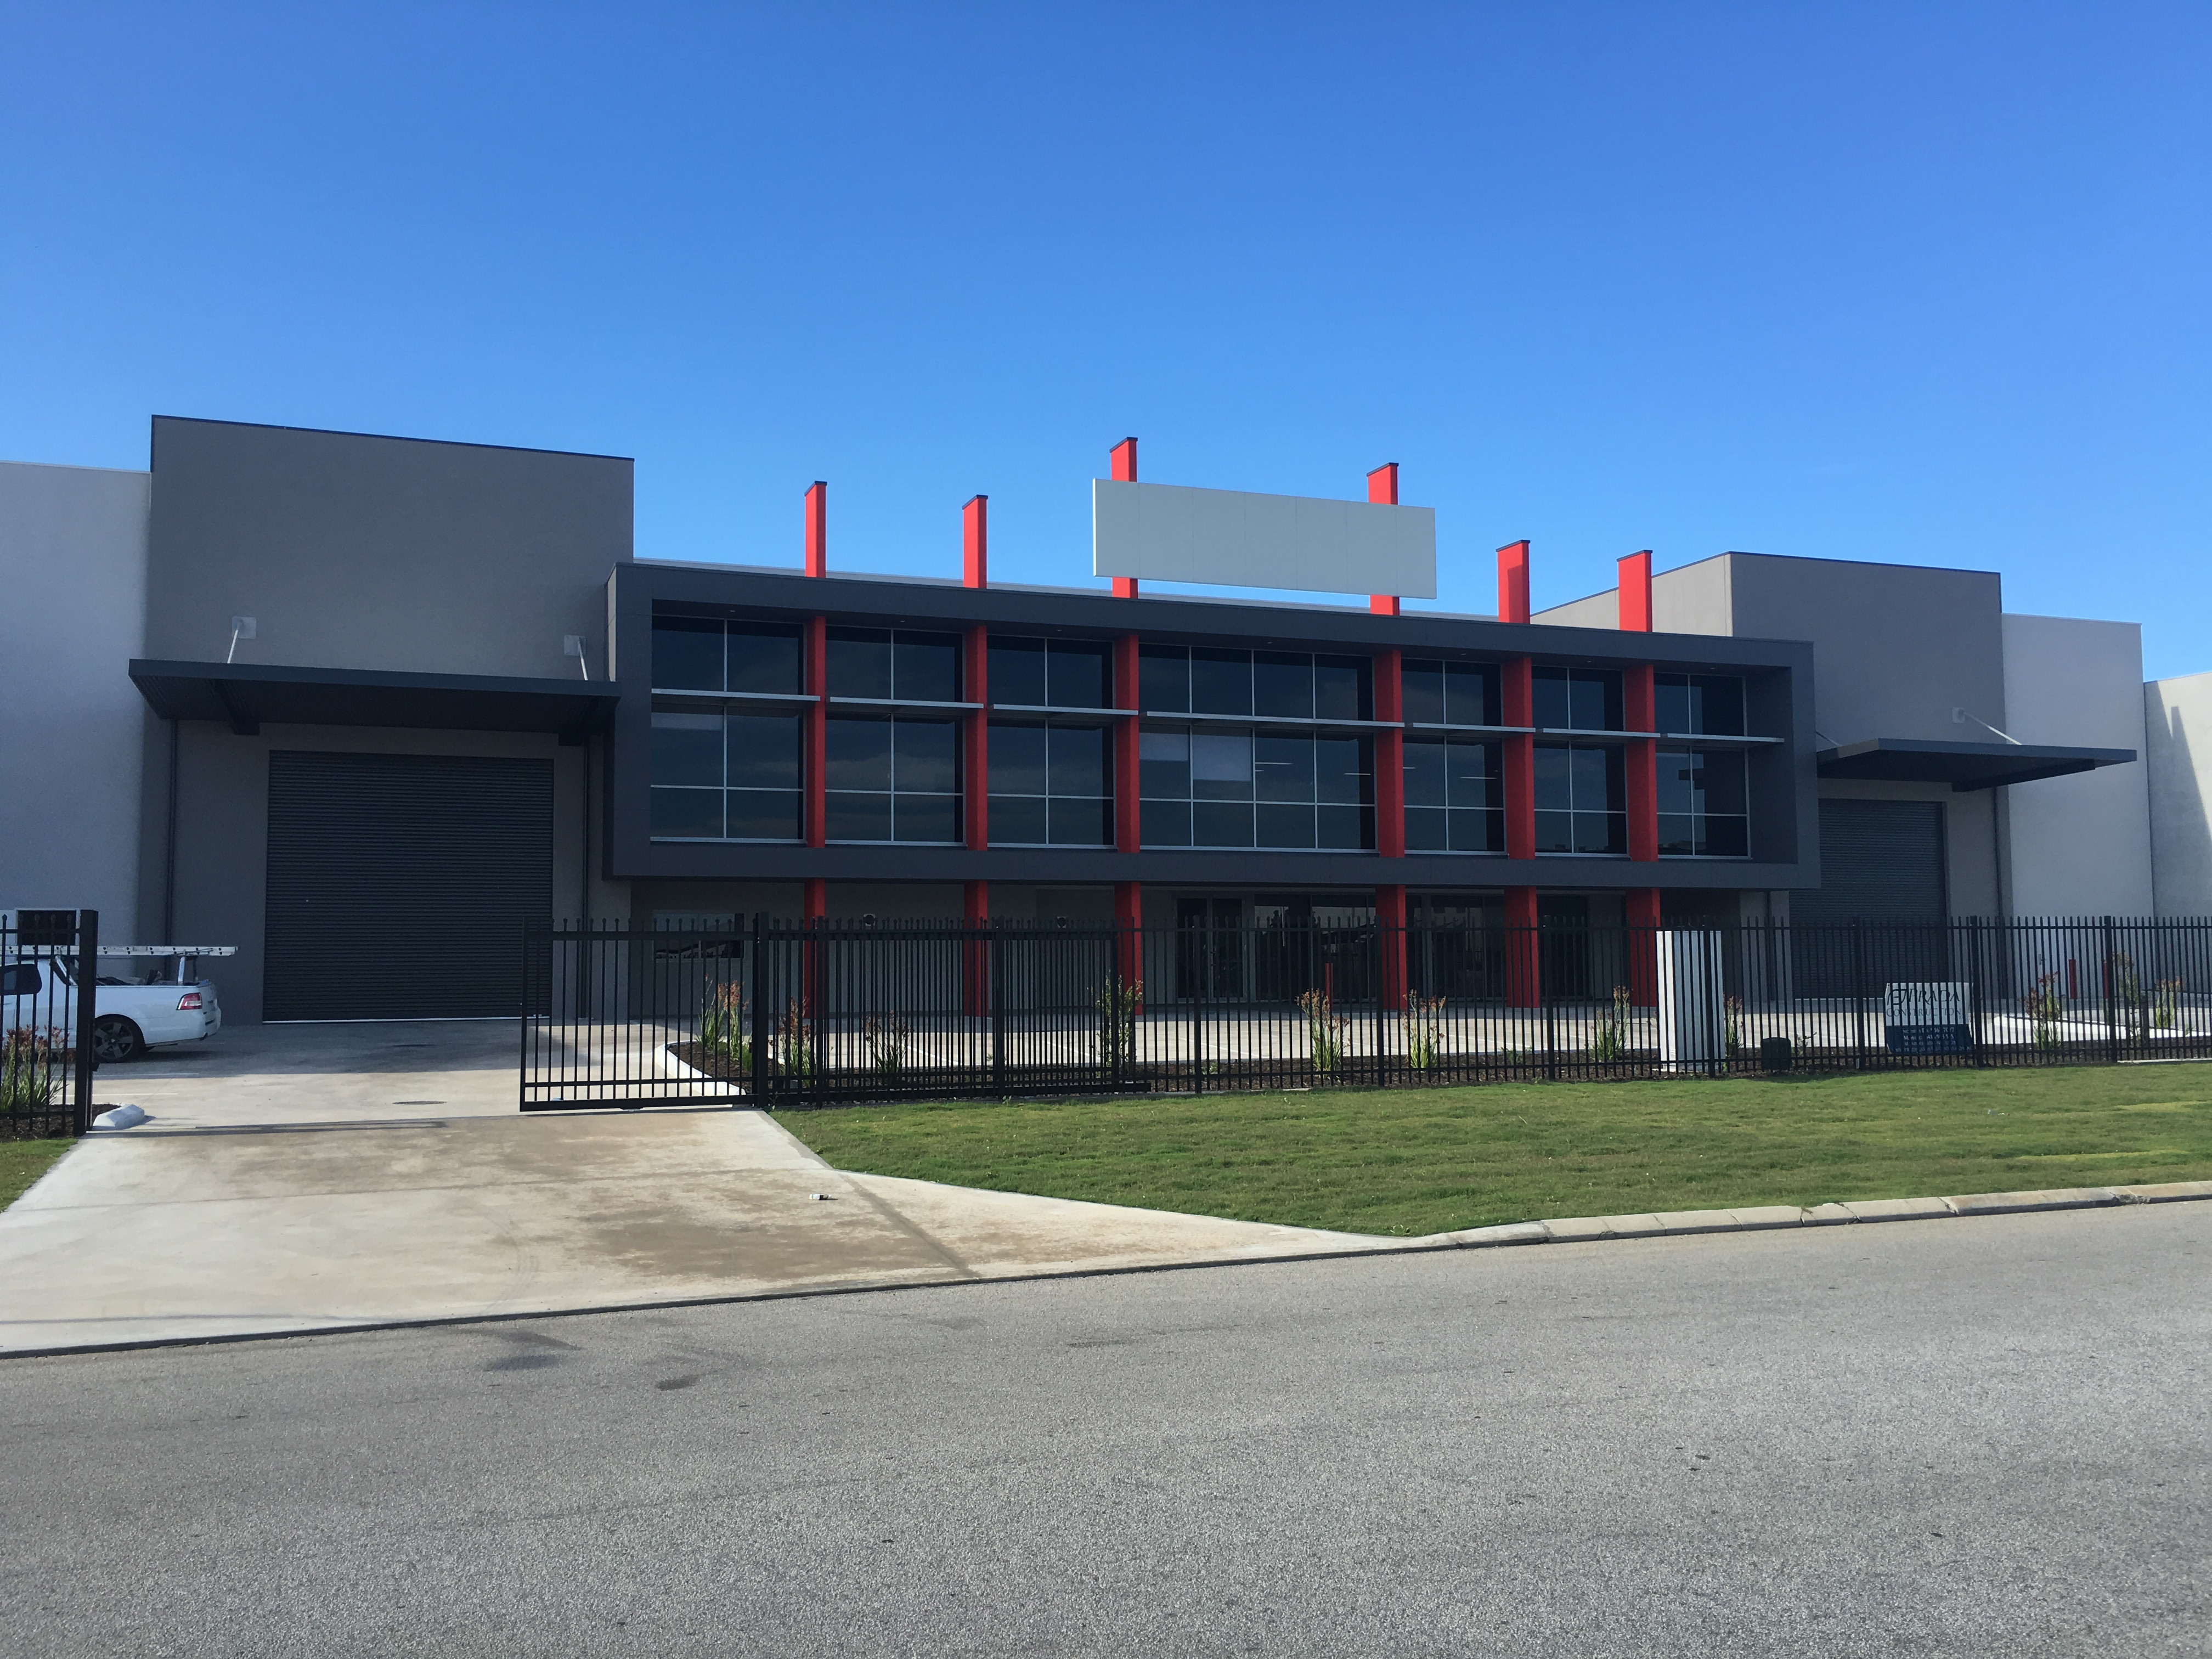 Exterior shot of large commercial office and warehouse complex, finished in dark grey with red accents